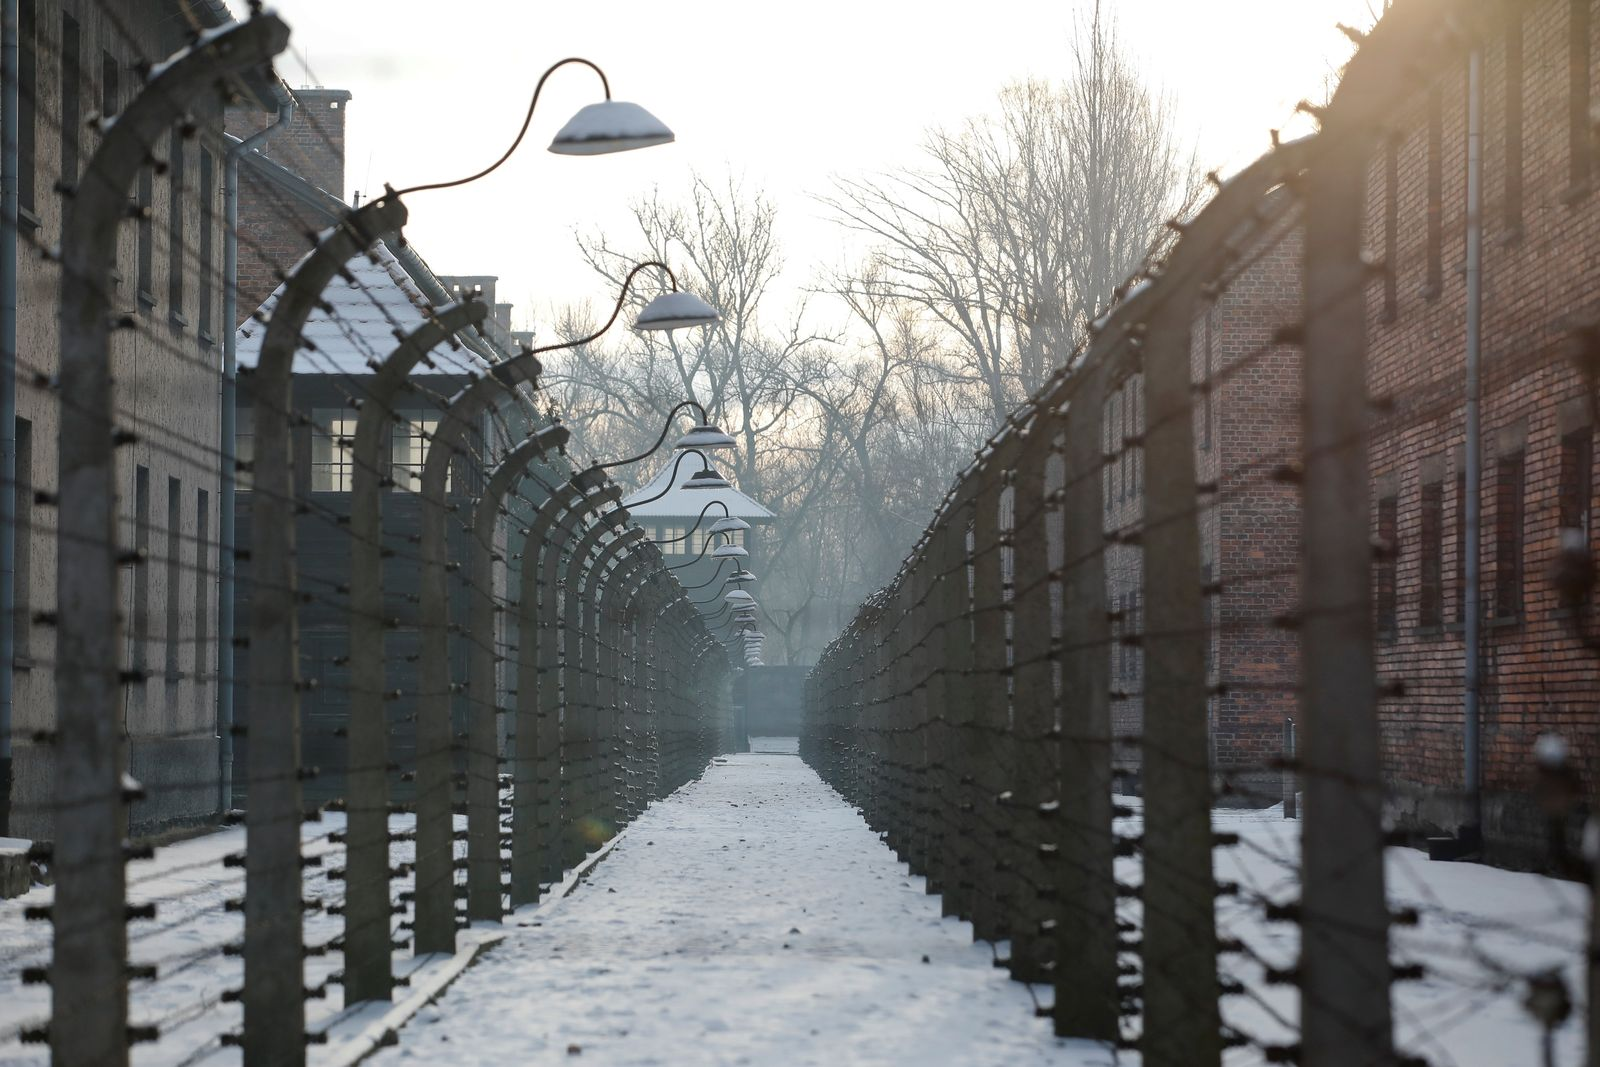 POLAND-HOLOCAUST/